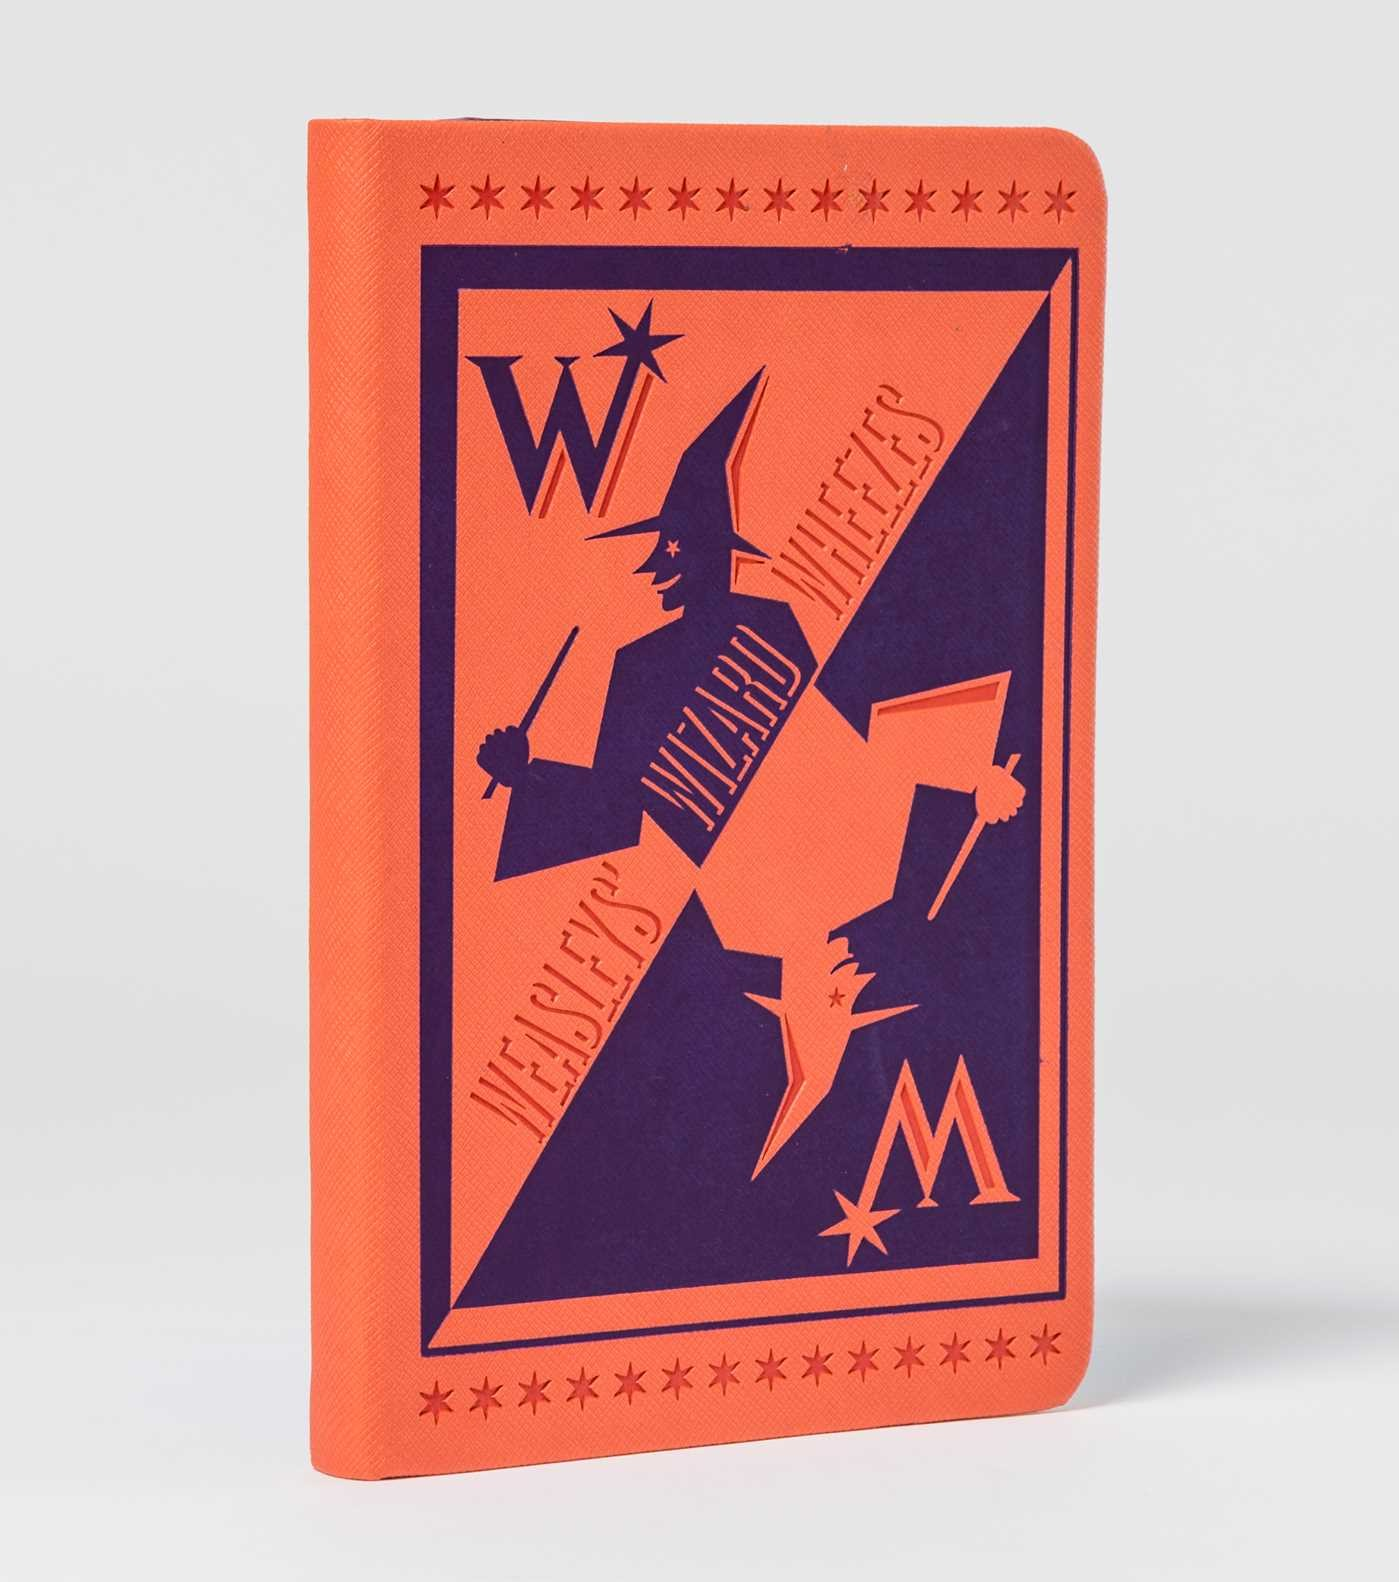 Harry potter weasleys wizard wheezes hardcover ruled journal 9781683833239.in06